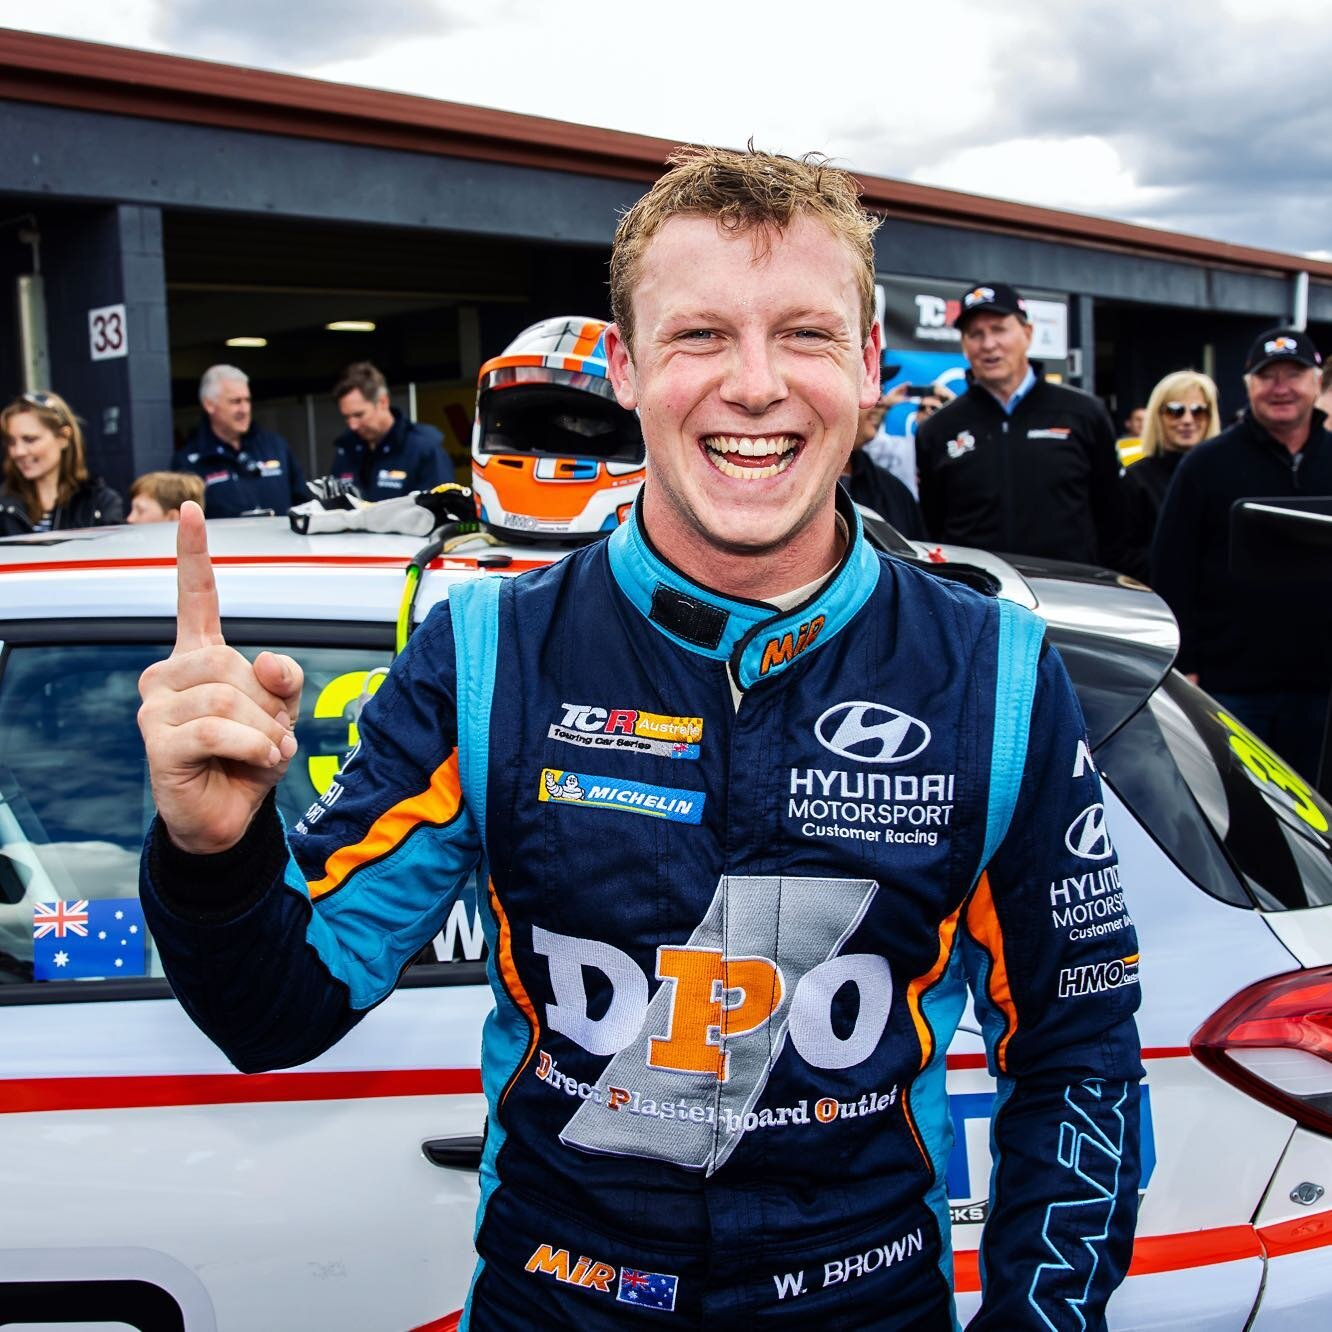 * 2019 TCR Australia champion - * V8 Supercar driver for the Bathurst 1000 Race winning team - Erebus* Winner of The Peter Brock Medal - awarded by CAMS to a driver who personifies the sport. The previous year's winner?...Mark Webber.* Bathurst 12 HR Endurance race Class winning driver - twice.* Australian Formula 4 Champion* Australian Toyota 86 Champion